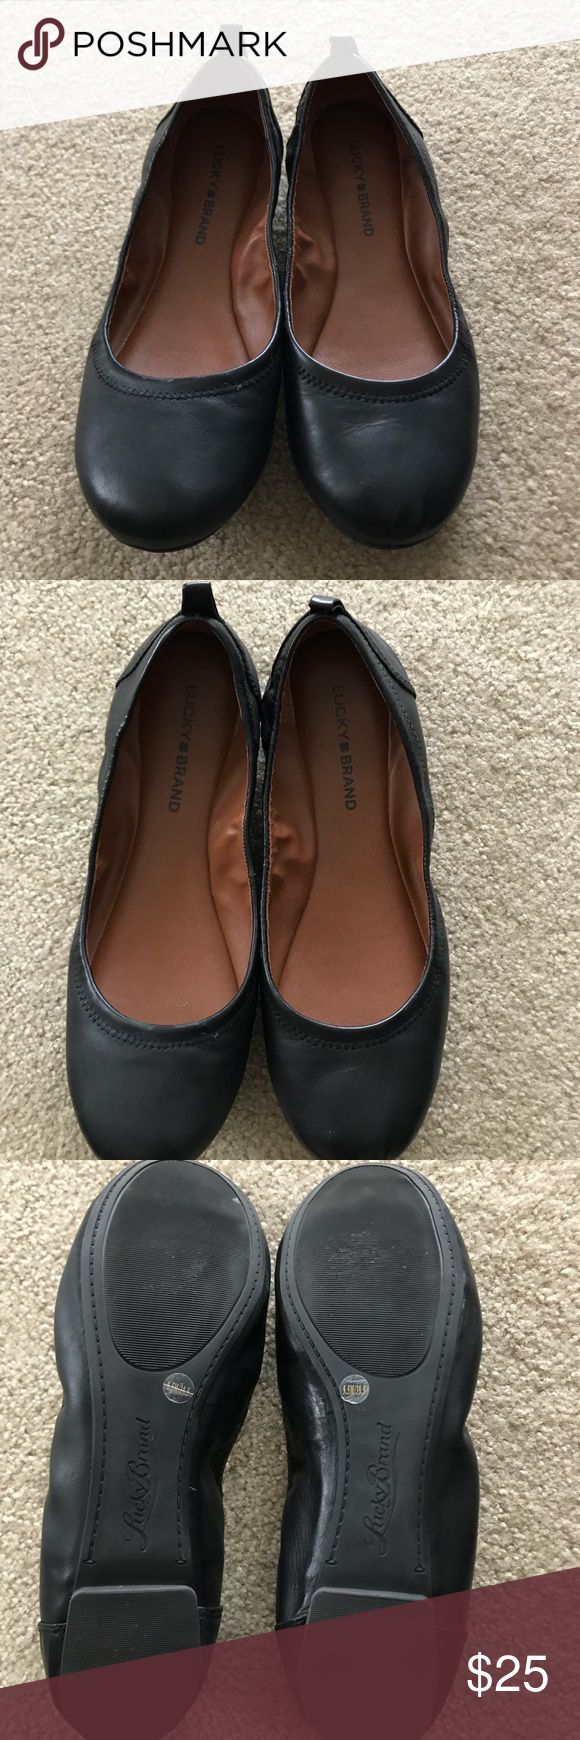 Lucky Brand flats Lucky Brand soft leather flats. These have a little wear on right shoe as pictured but otherwise is good shape. Soft sole and comfortable. Lucky Brand Shoes Flats & Loafers